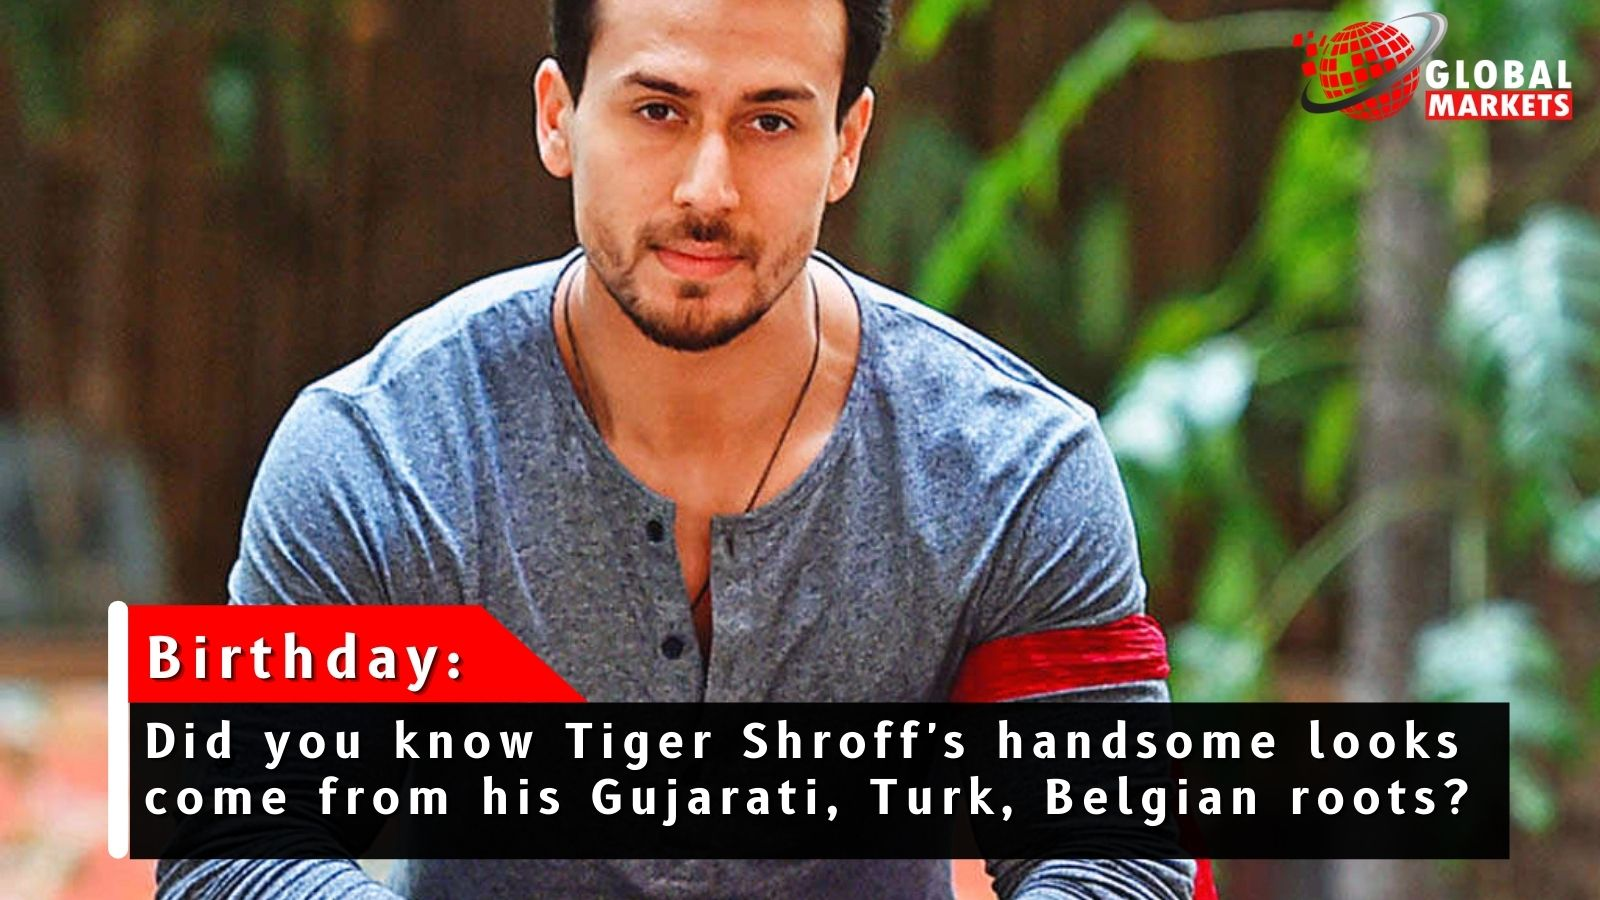 Do you know that Tiger Shroff's handsome look comes from his Gujarati, Turk, Belgian roots?